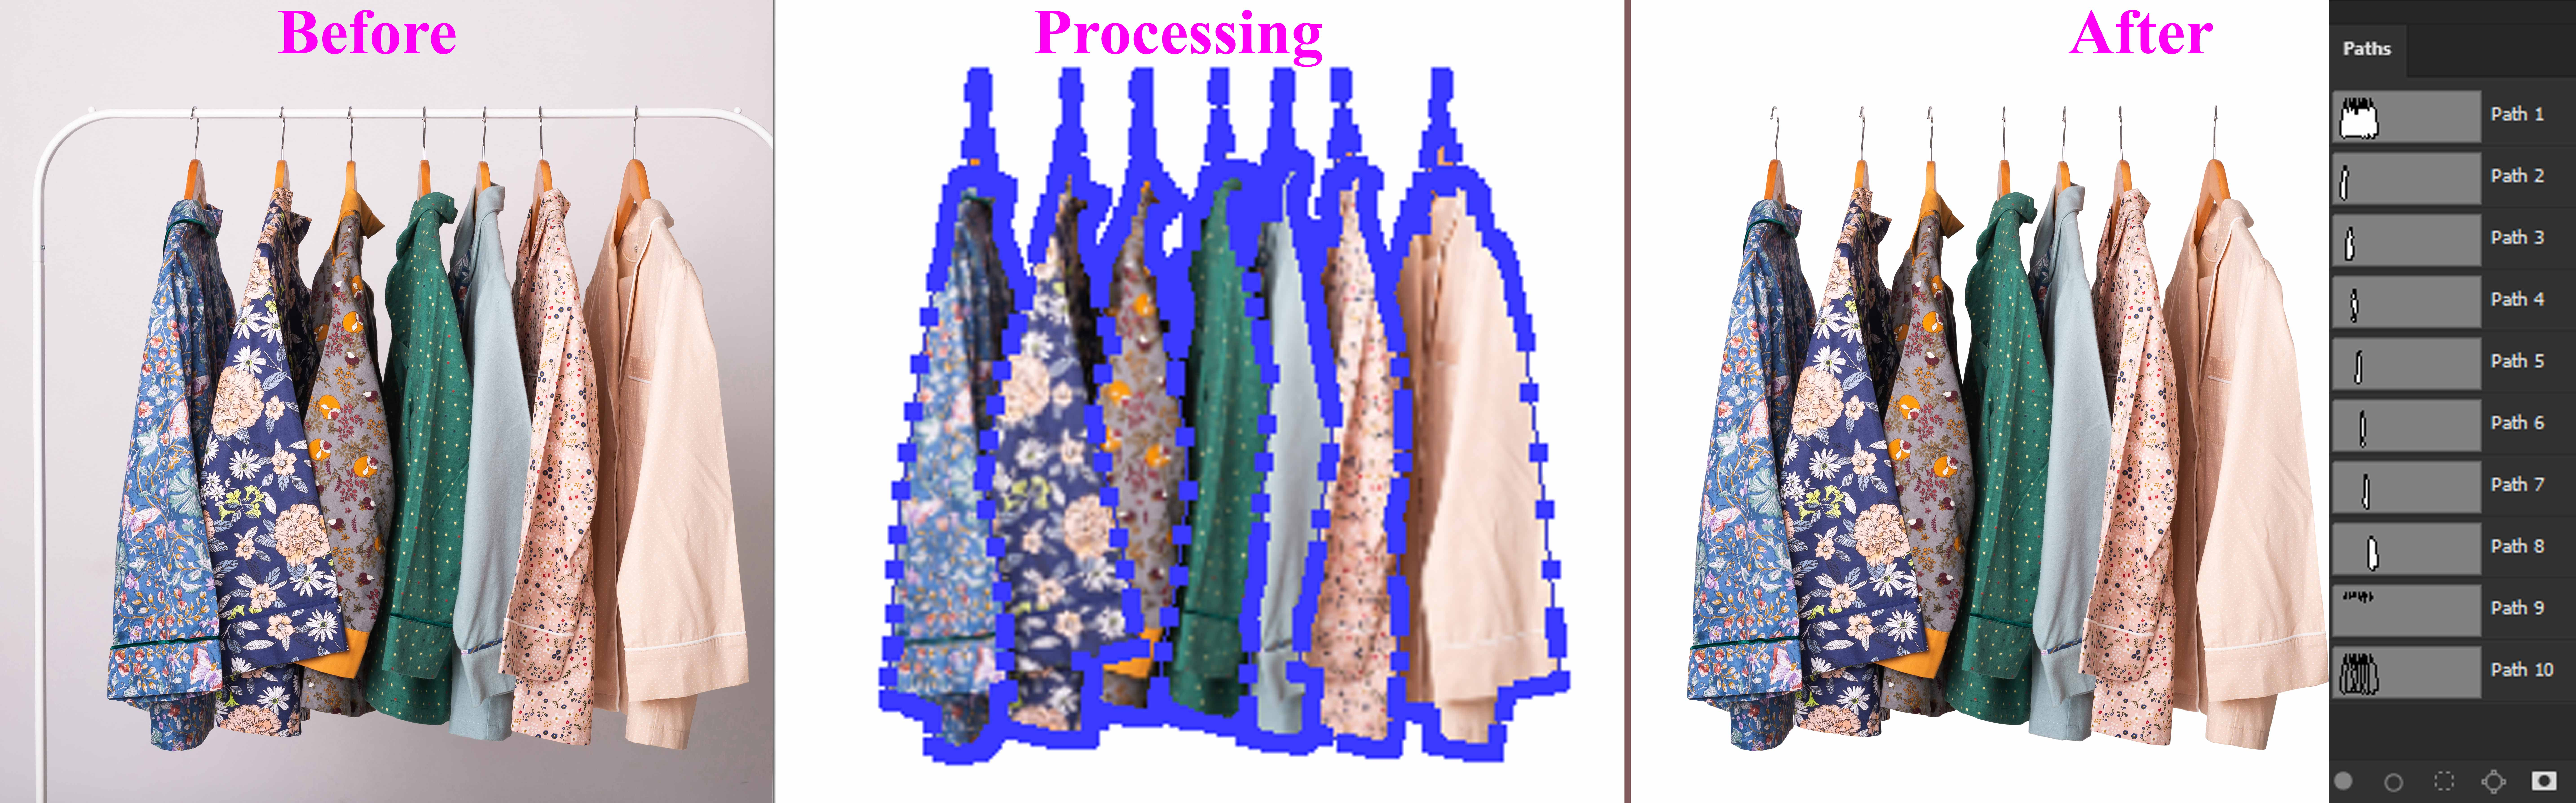 Clipping-Path-Correction